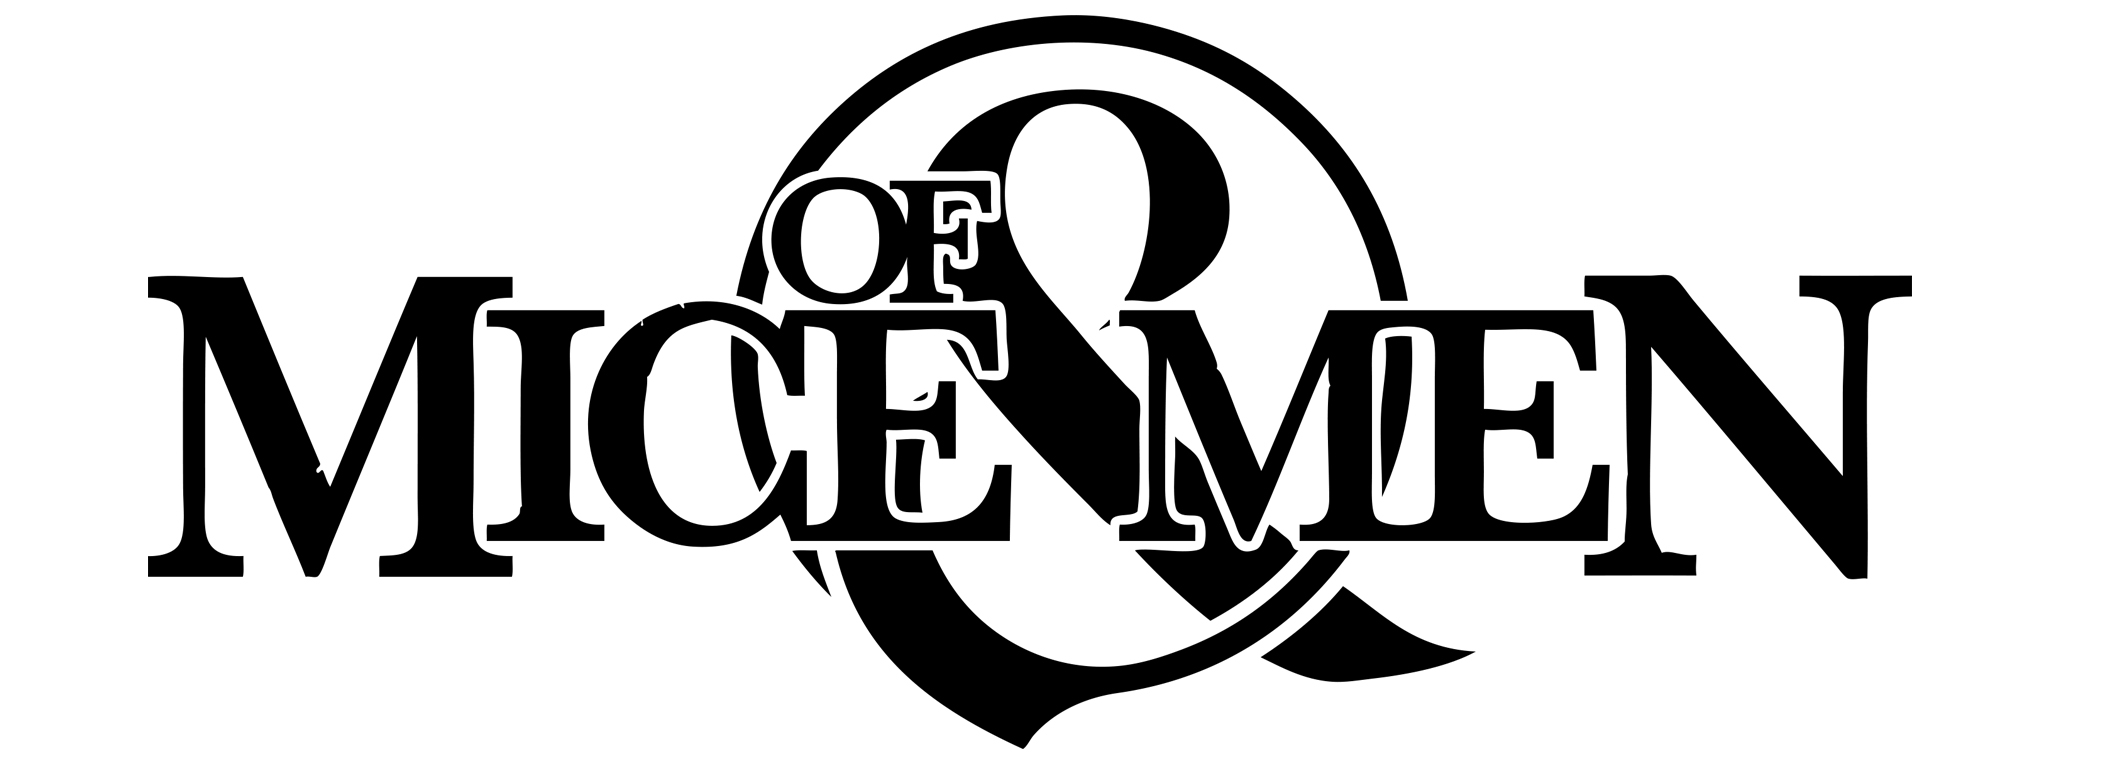 Of Mice & Men_logo